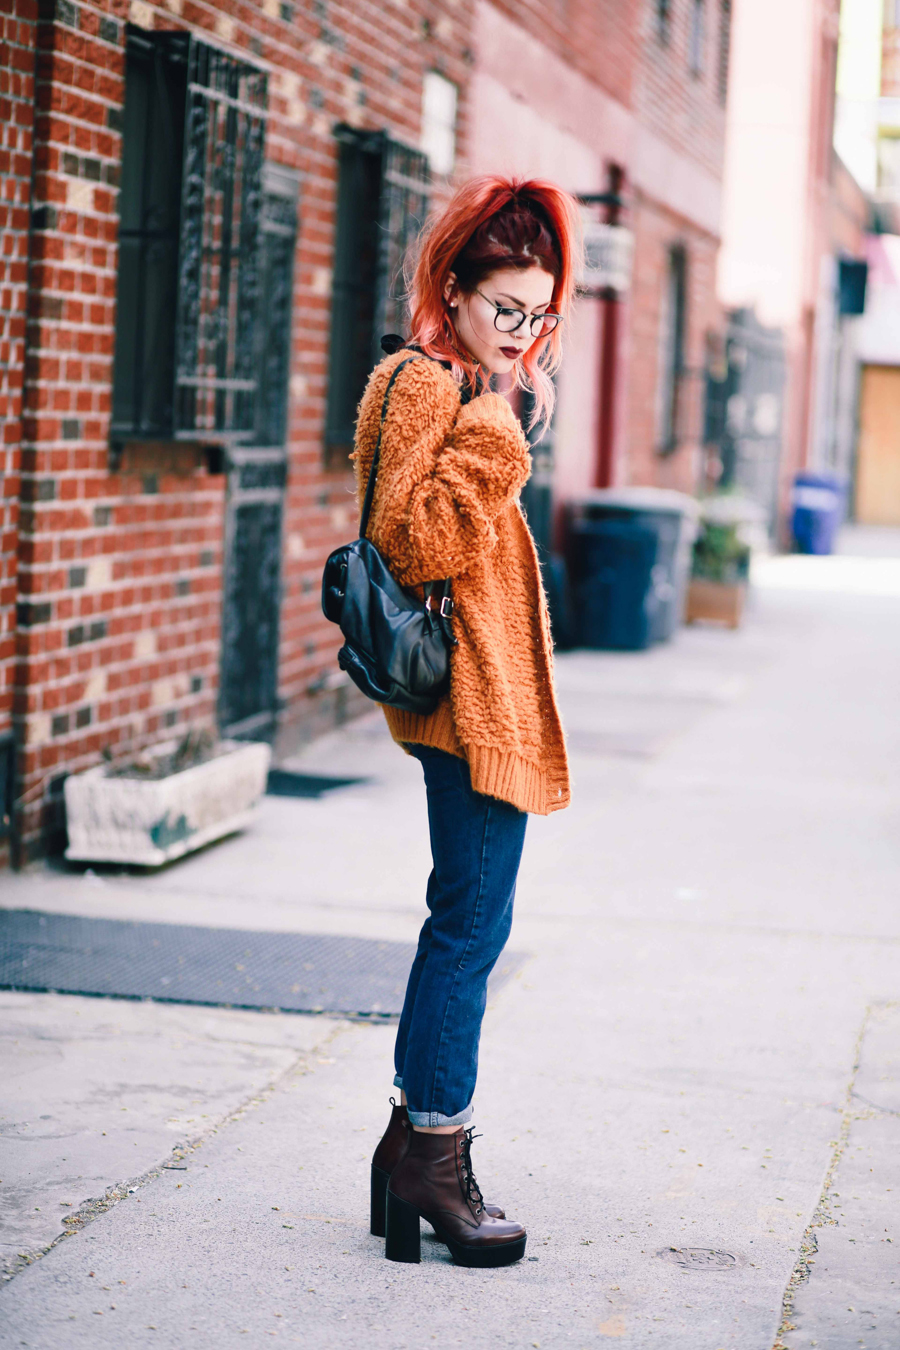 Le Happy wearing chunky sweater and Steve Madden red booties